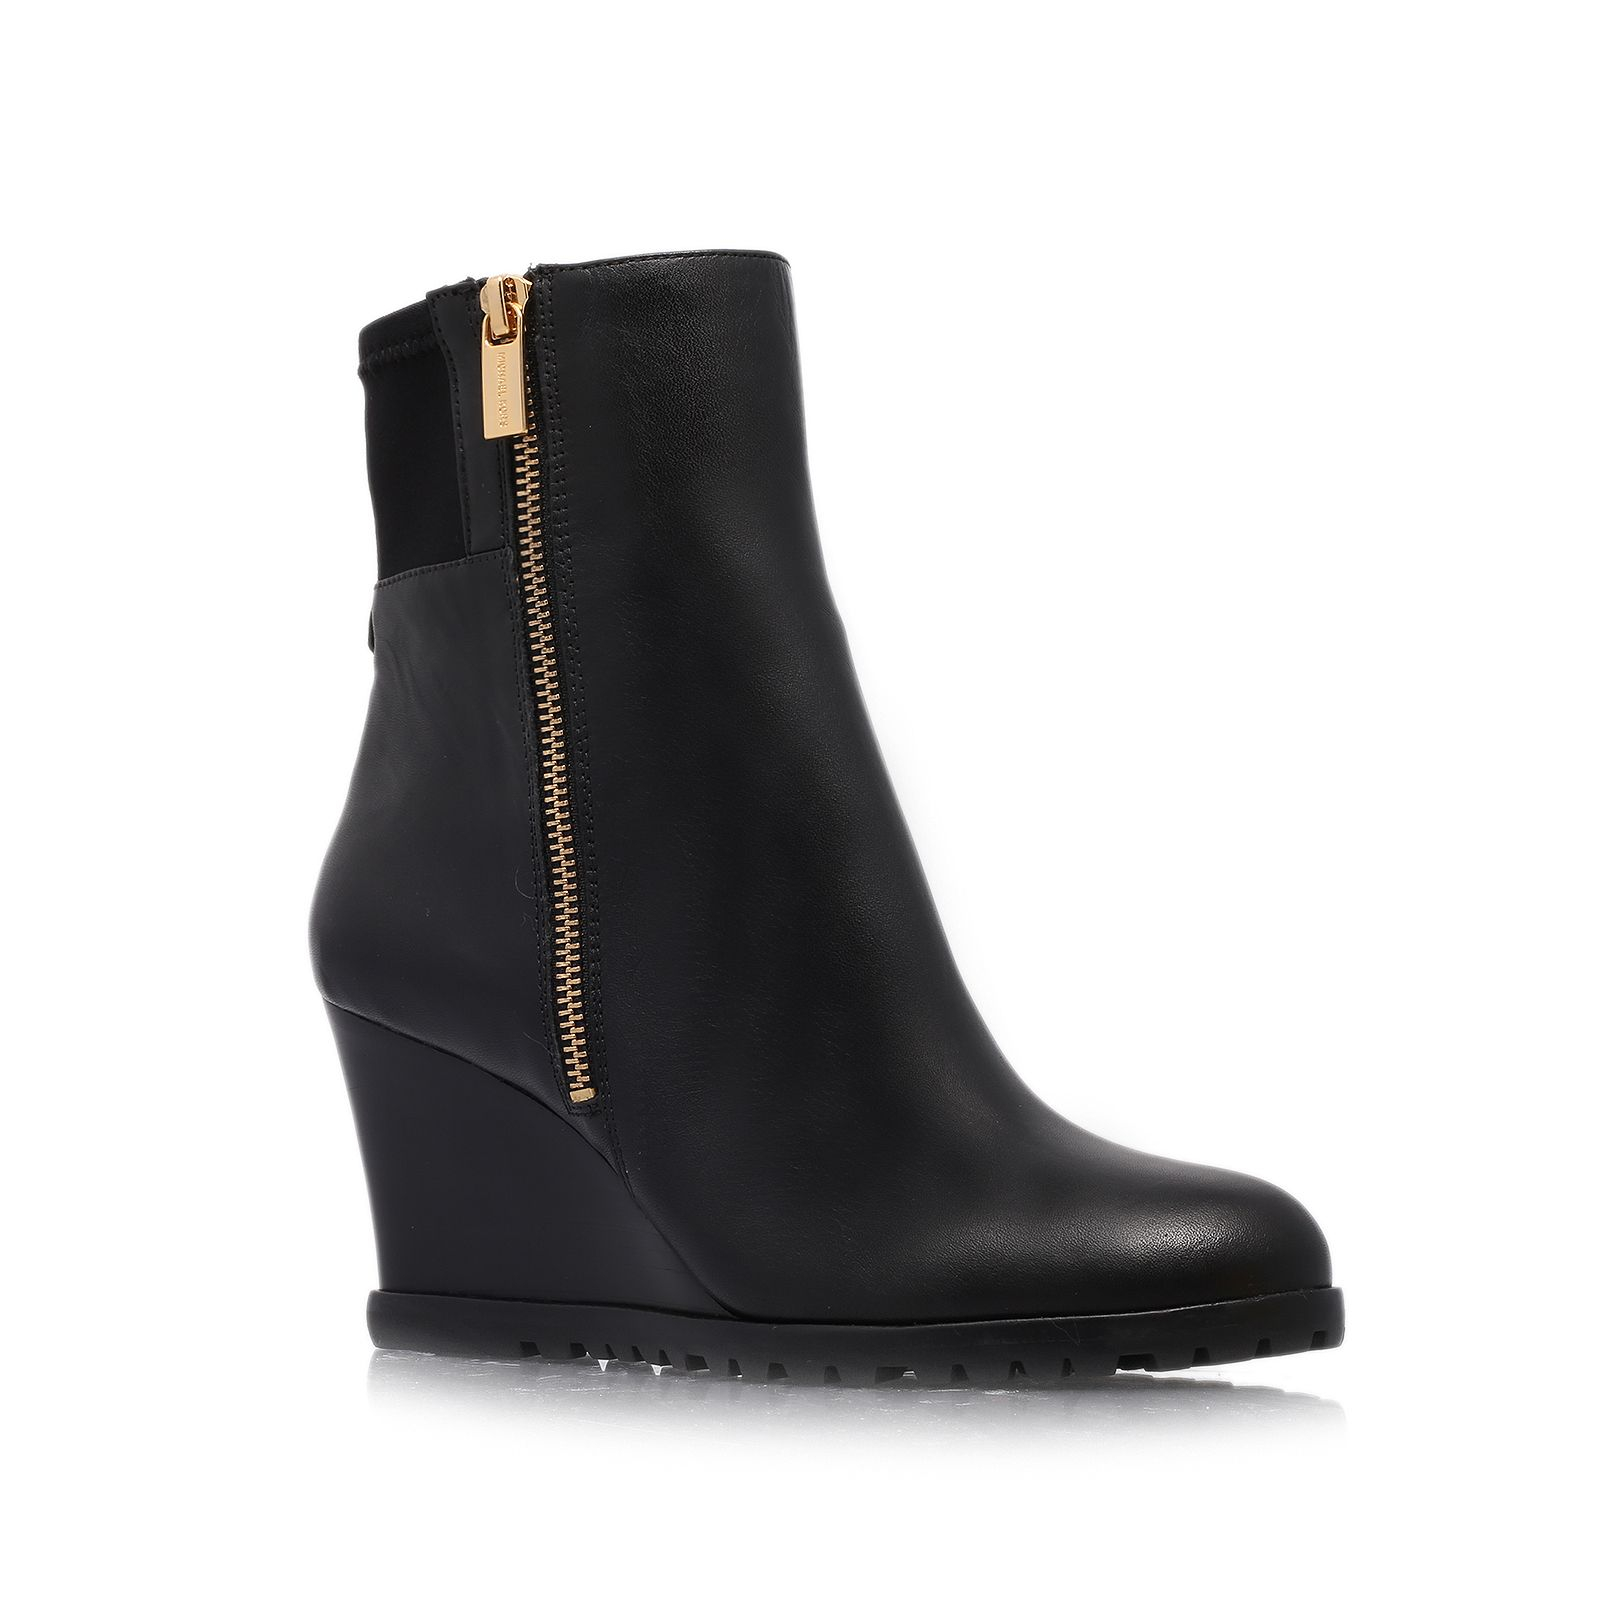 Michael kors Aileen Wedge Ankle Boot in Black | Lyst